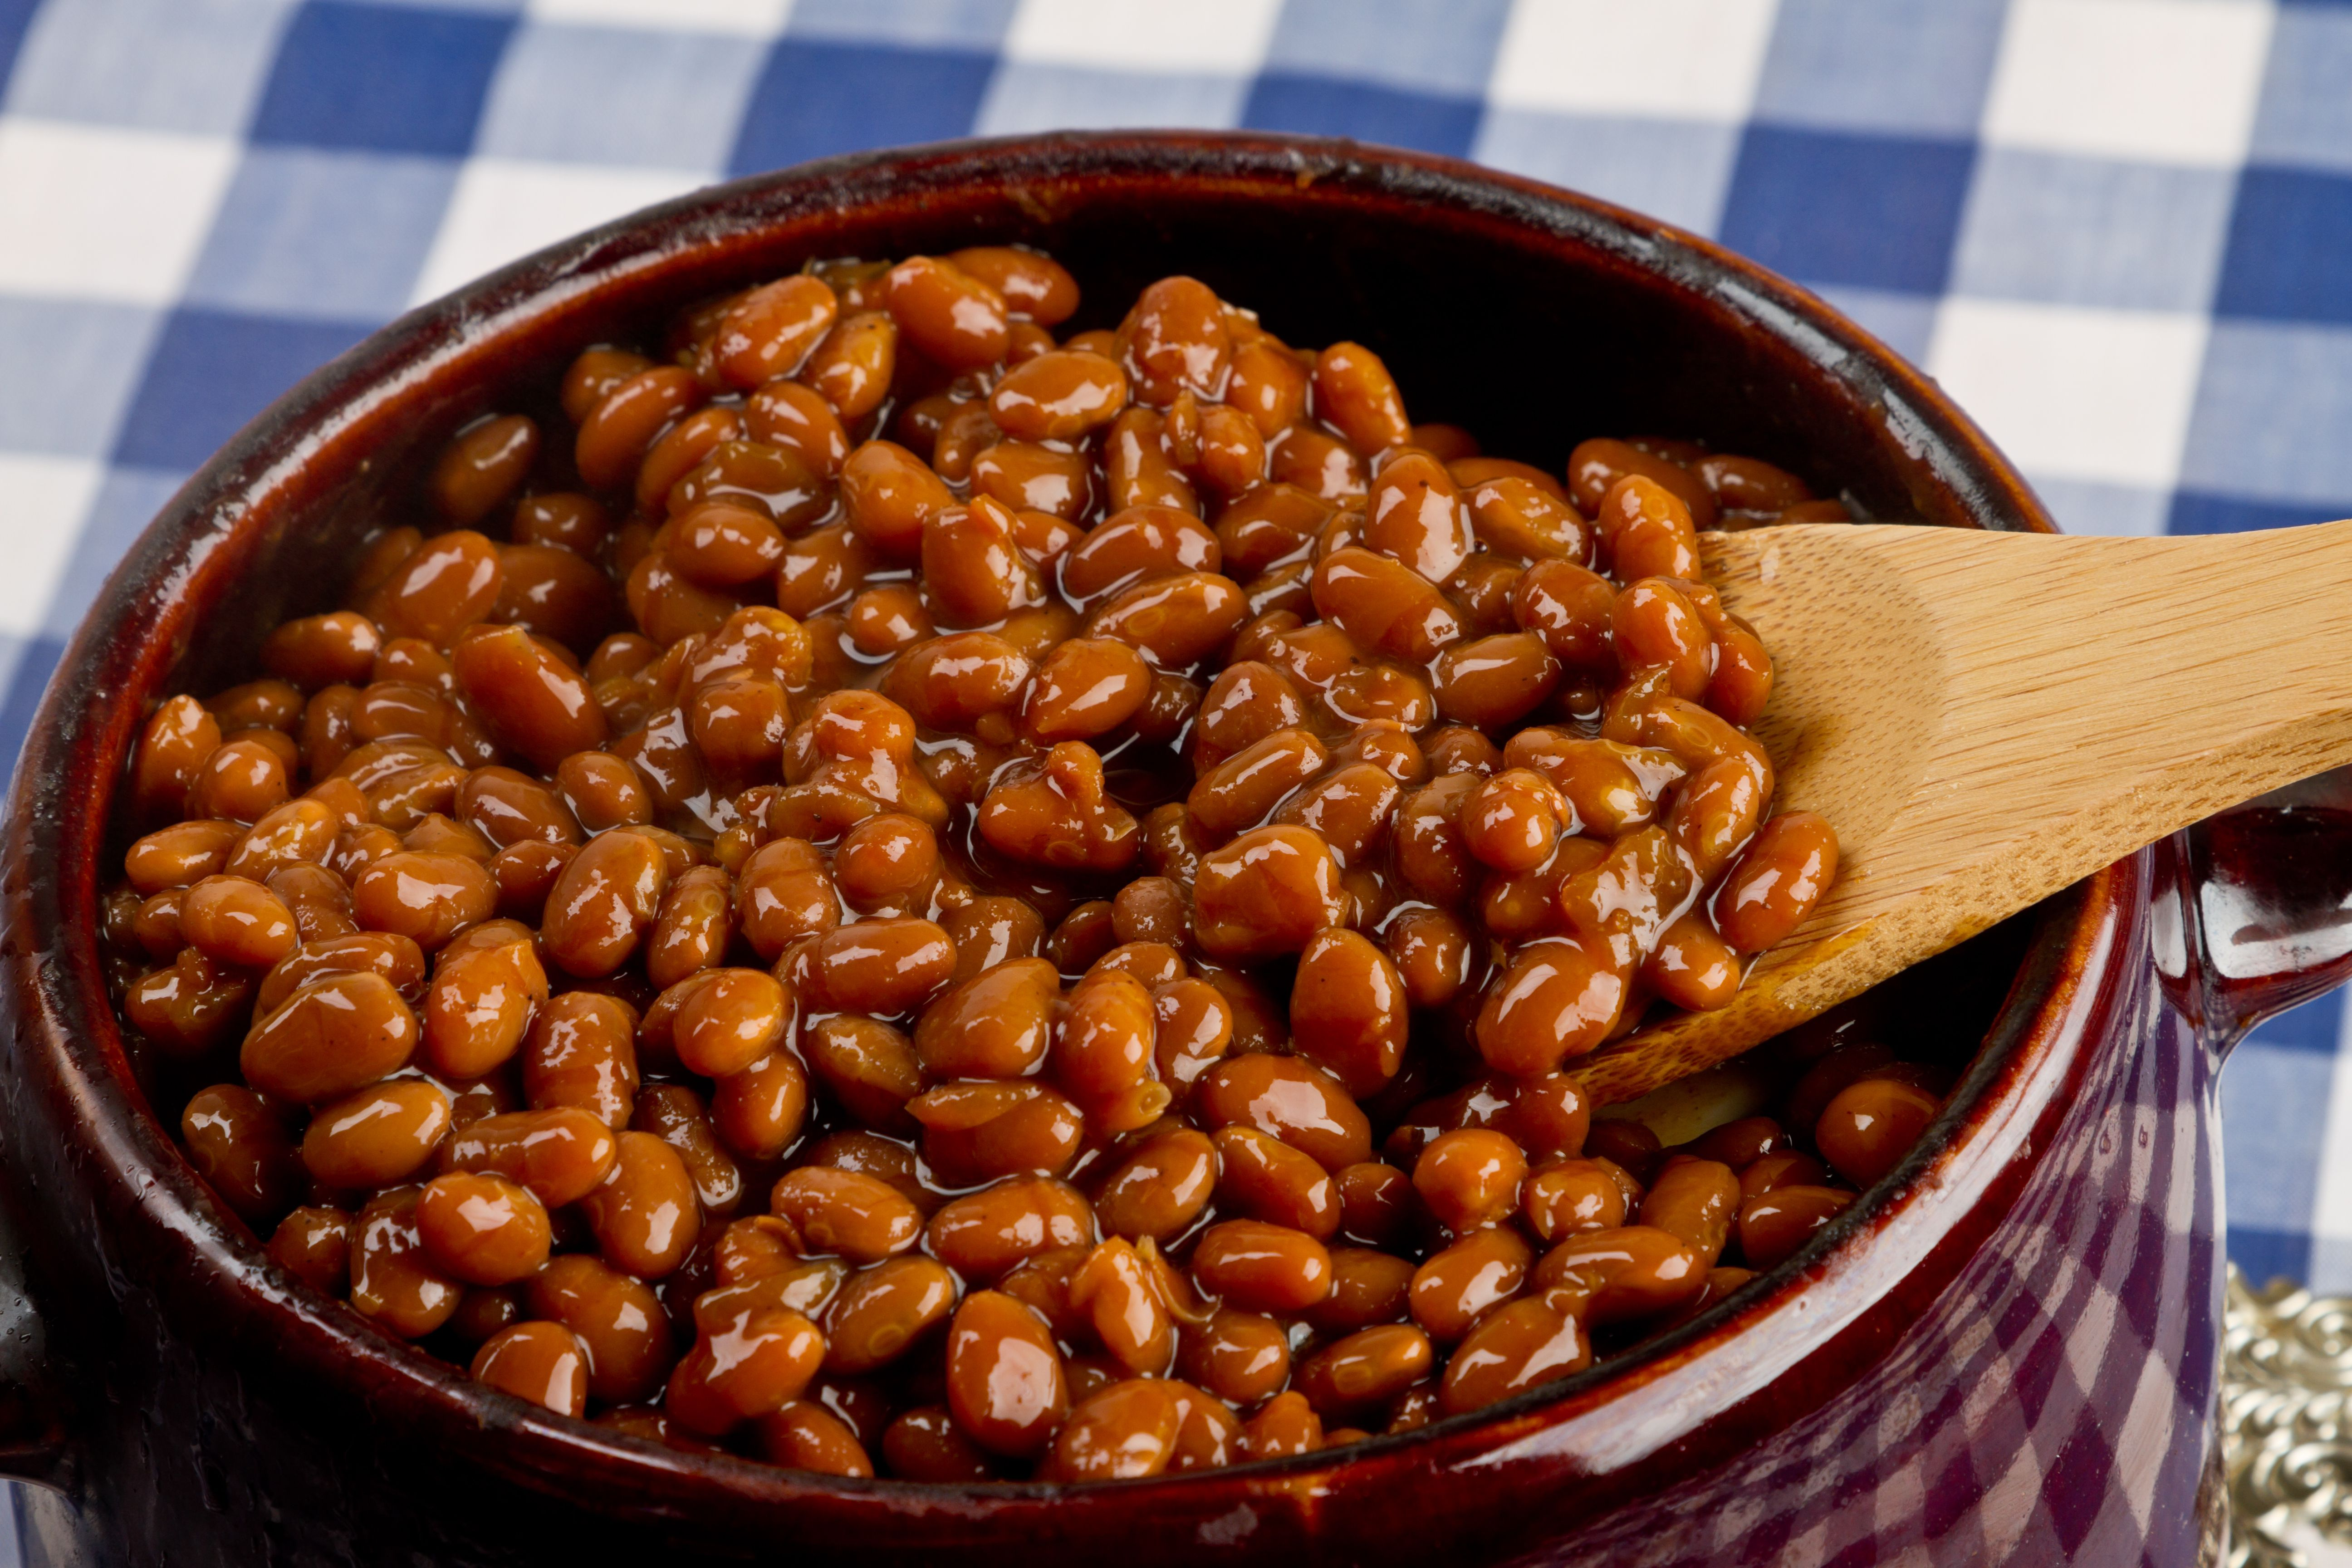 Easy Recipe For Baked Beans In The Crockpot